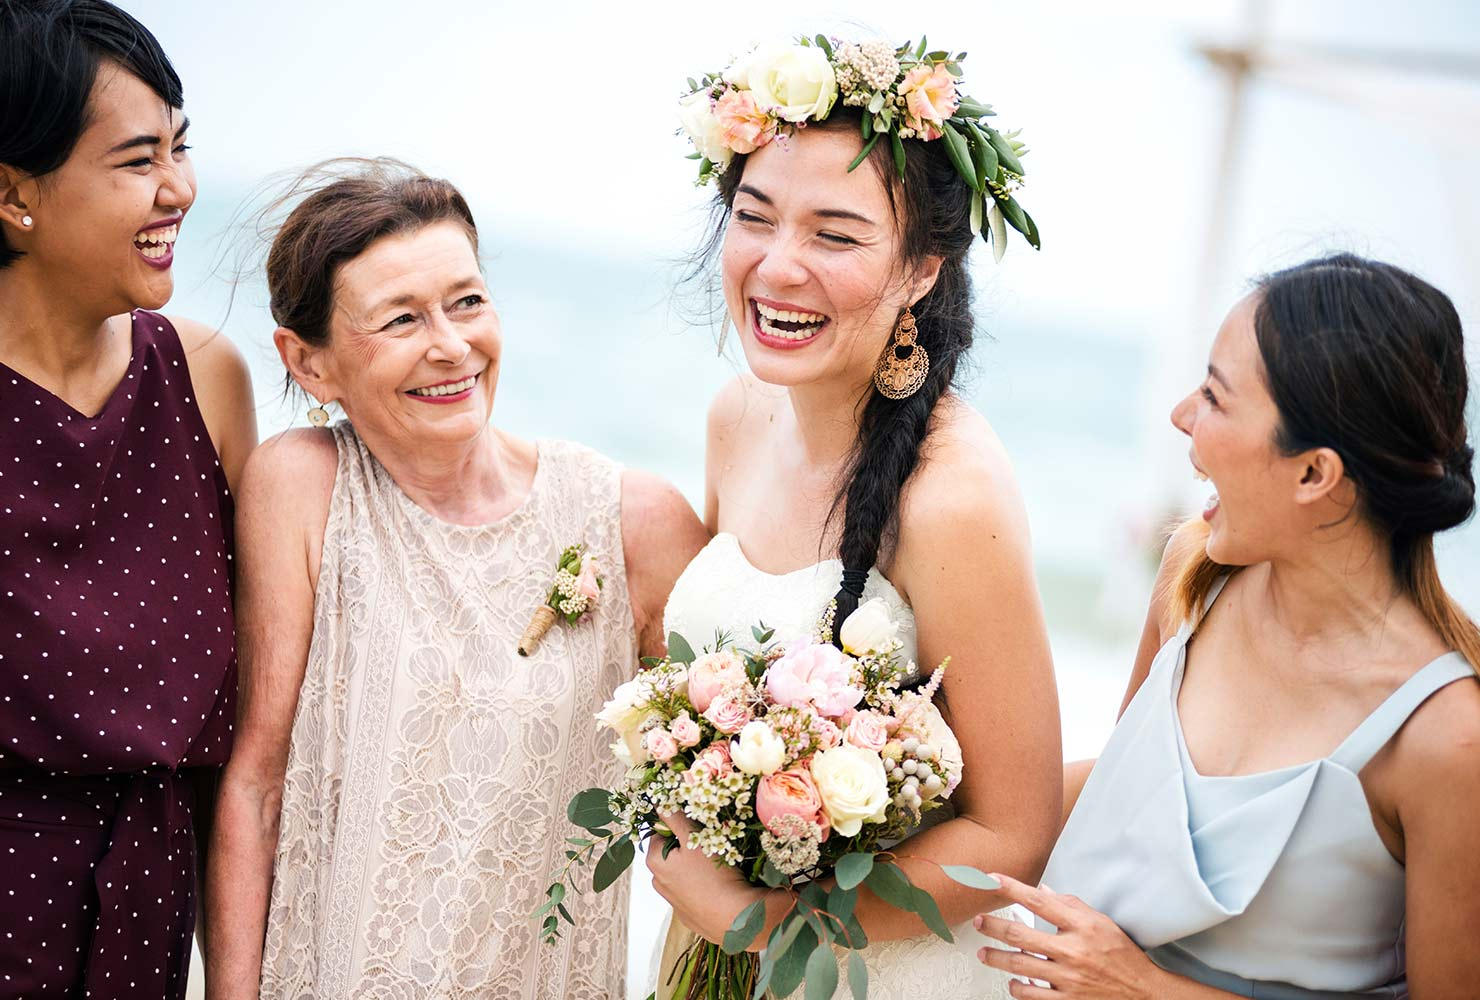 bride with flower crown surrounded by her smiling family